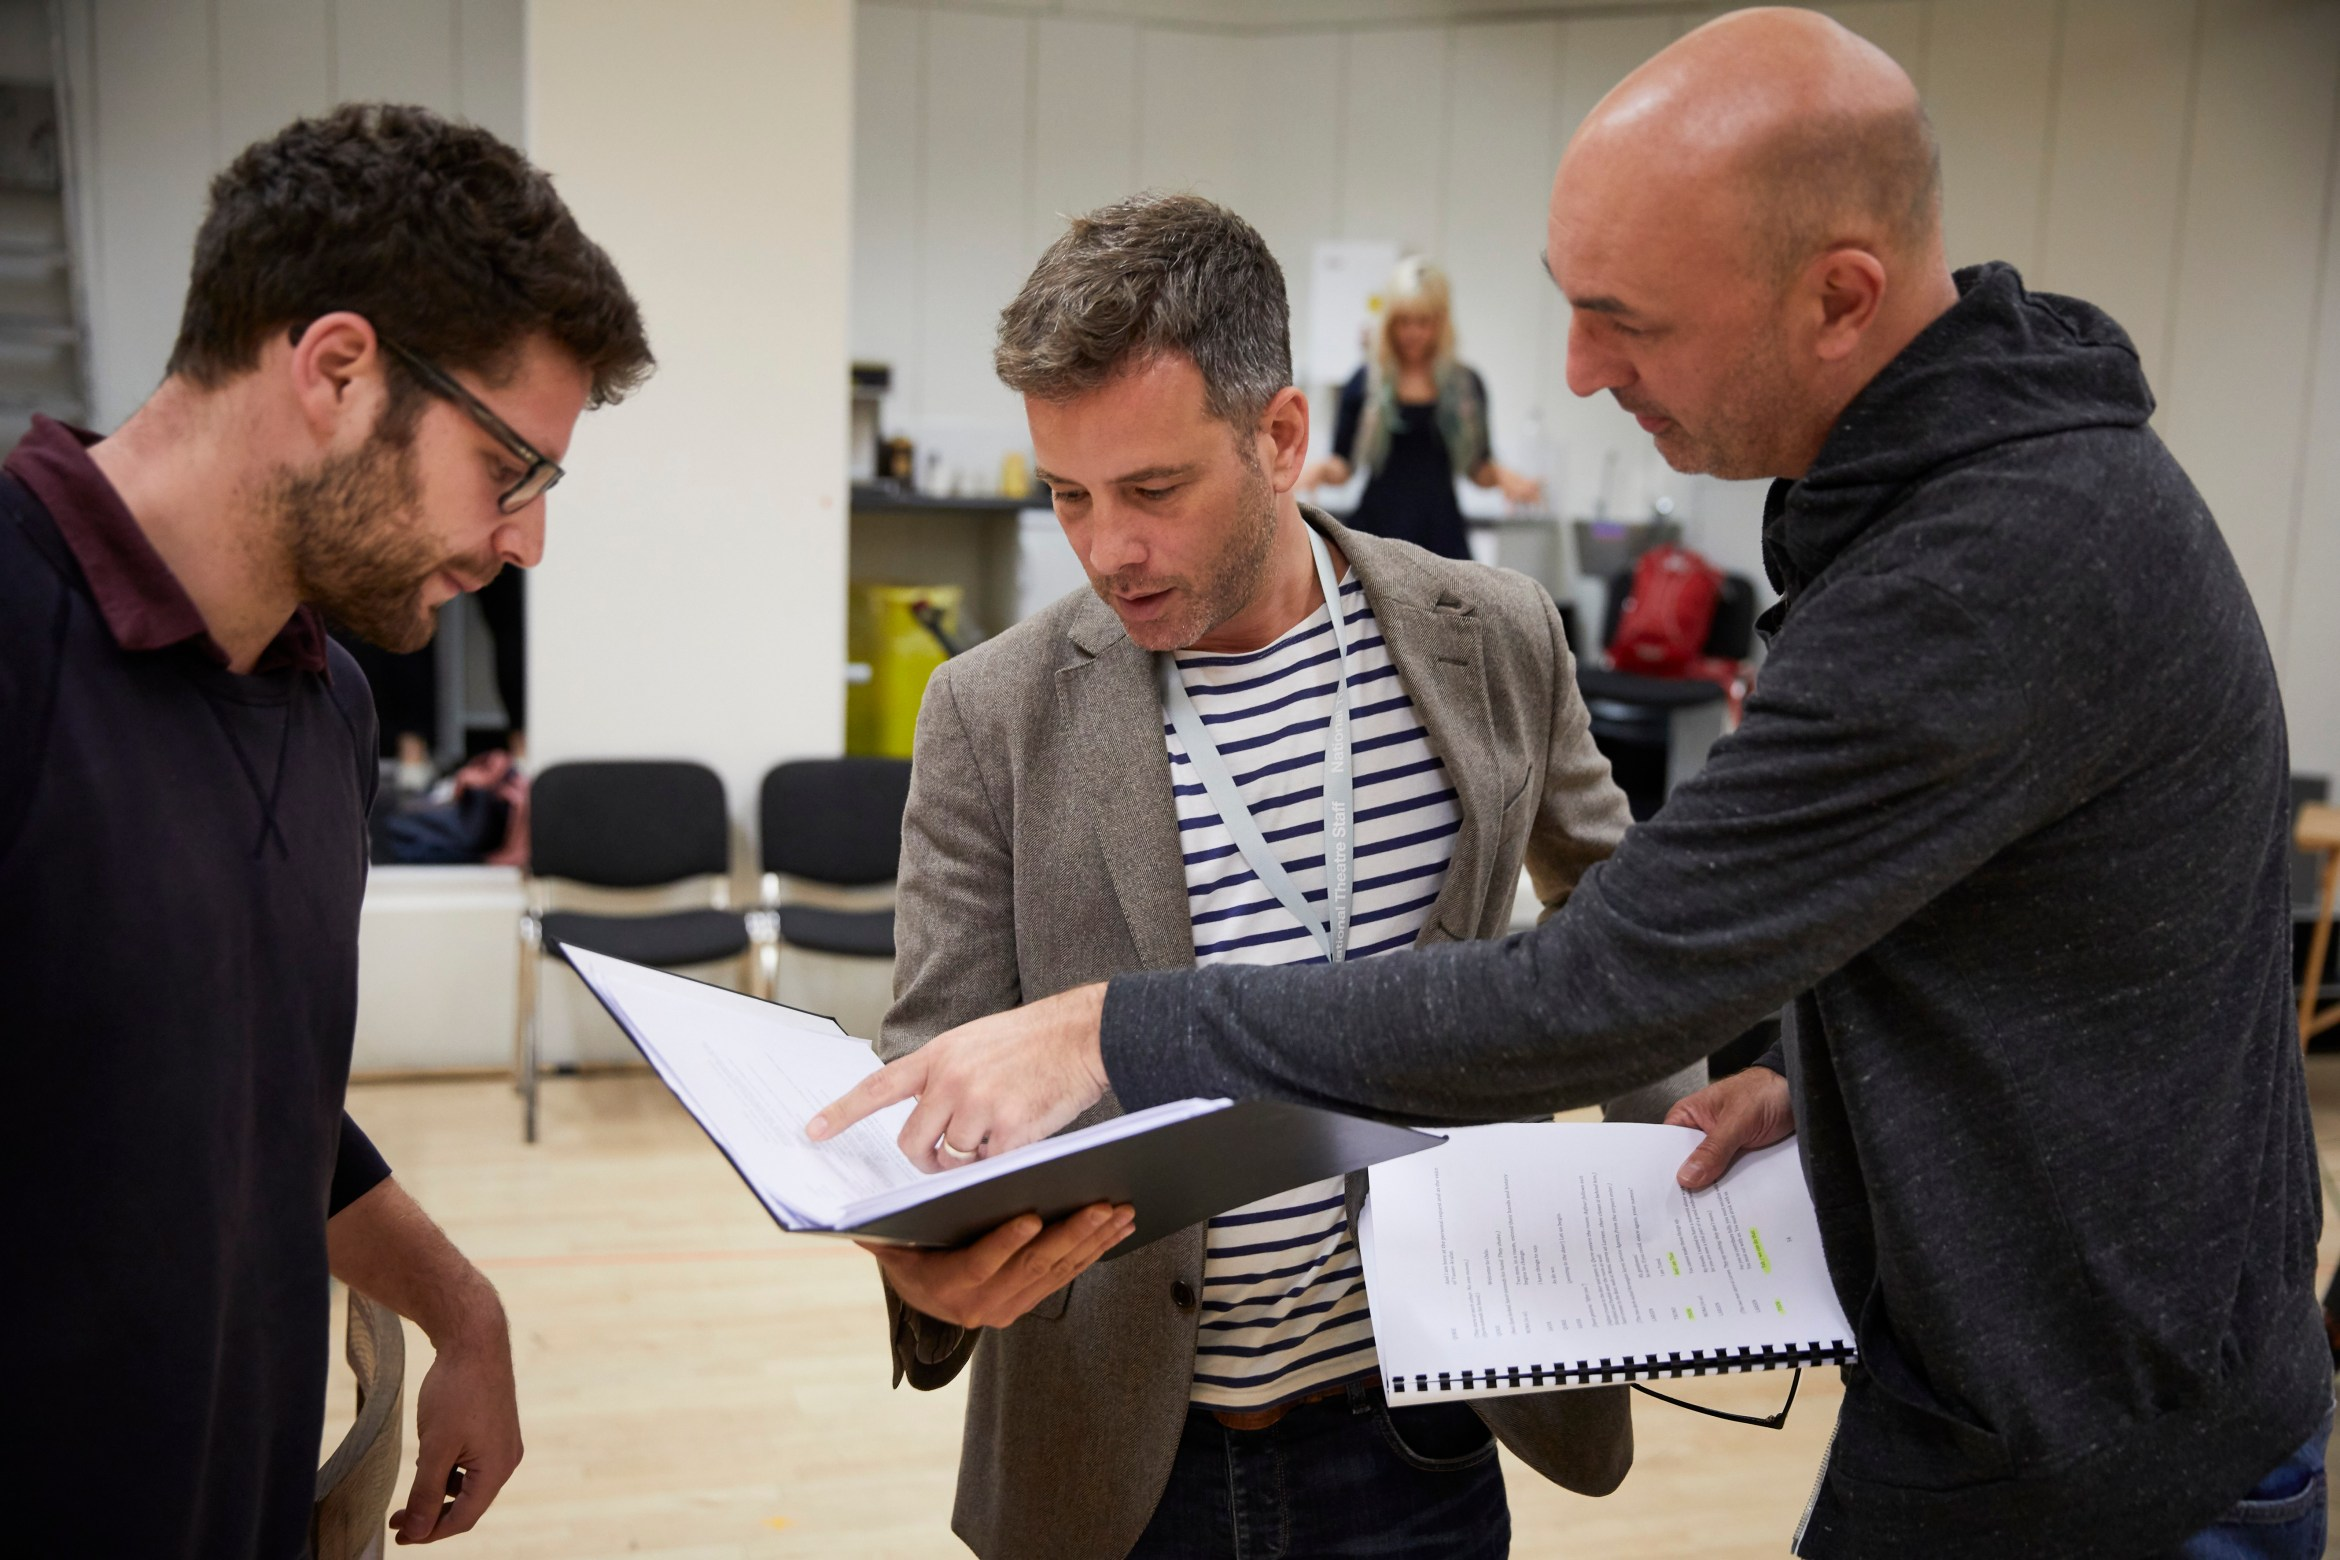 l-r Oscar Toeman (assistant director), Yair Jonah Lotan and Daniel Stewart in rehearsal for 'Oslo' - photo credit Brinkhoff Mögenberg.988-0196